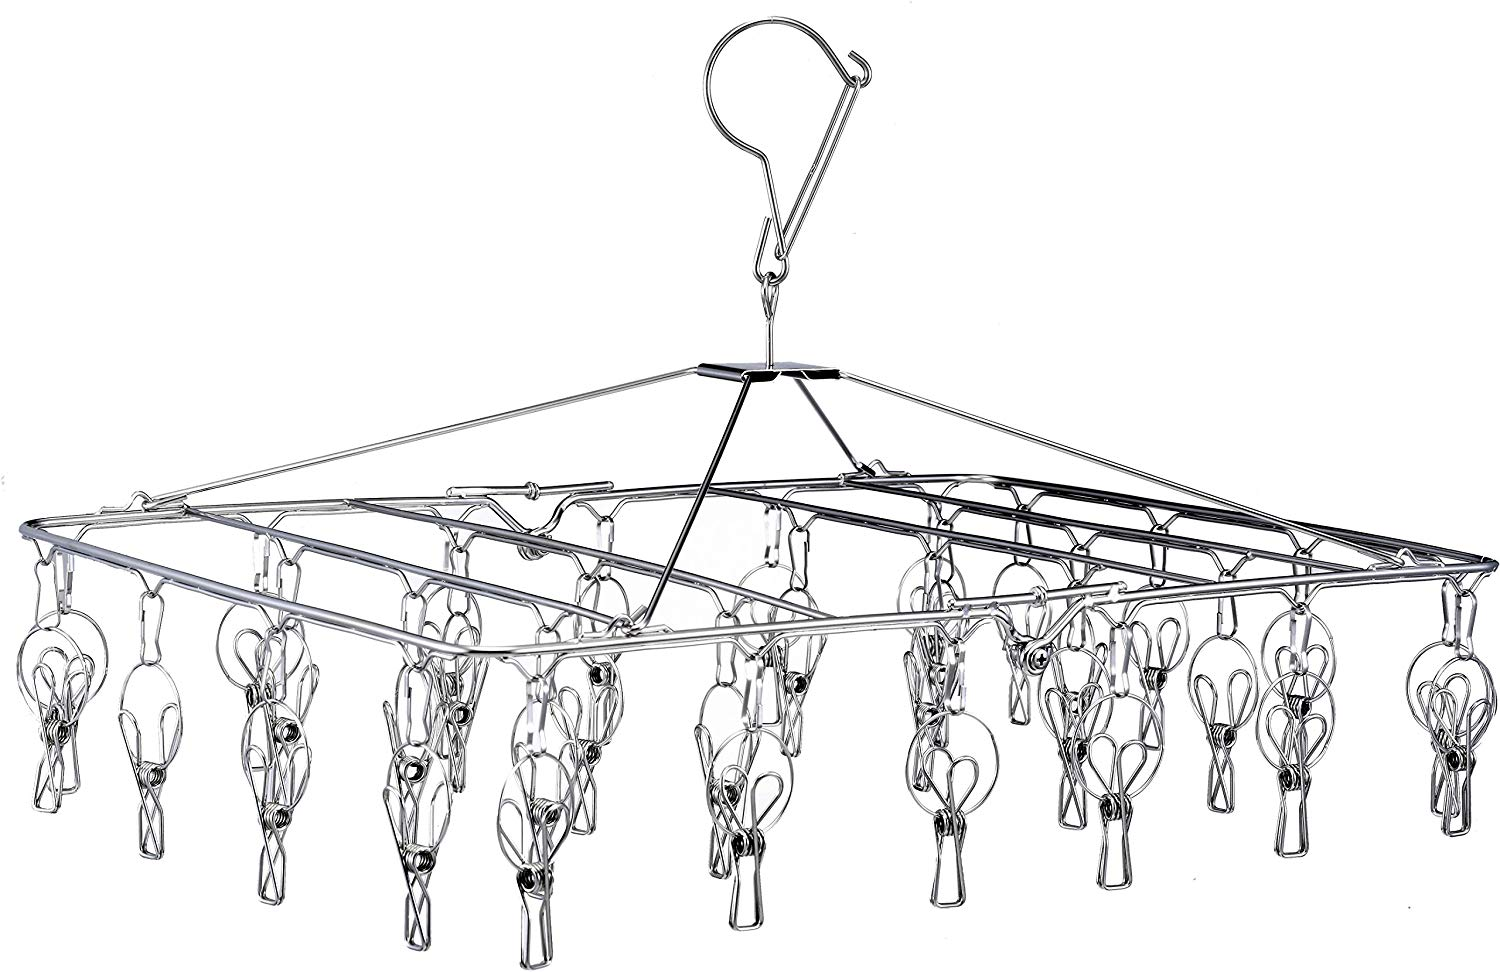 Laundry Clothesline Hanging Rack for Drying Clothing Set of 18 Stainless Steel Clothespins Oval PCKT